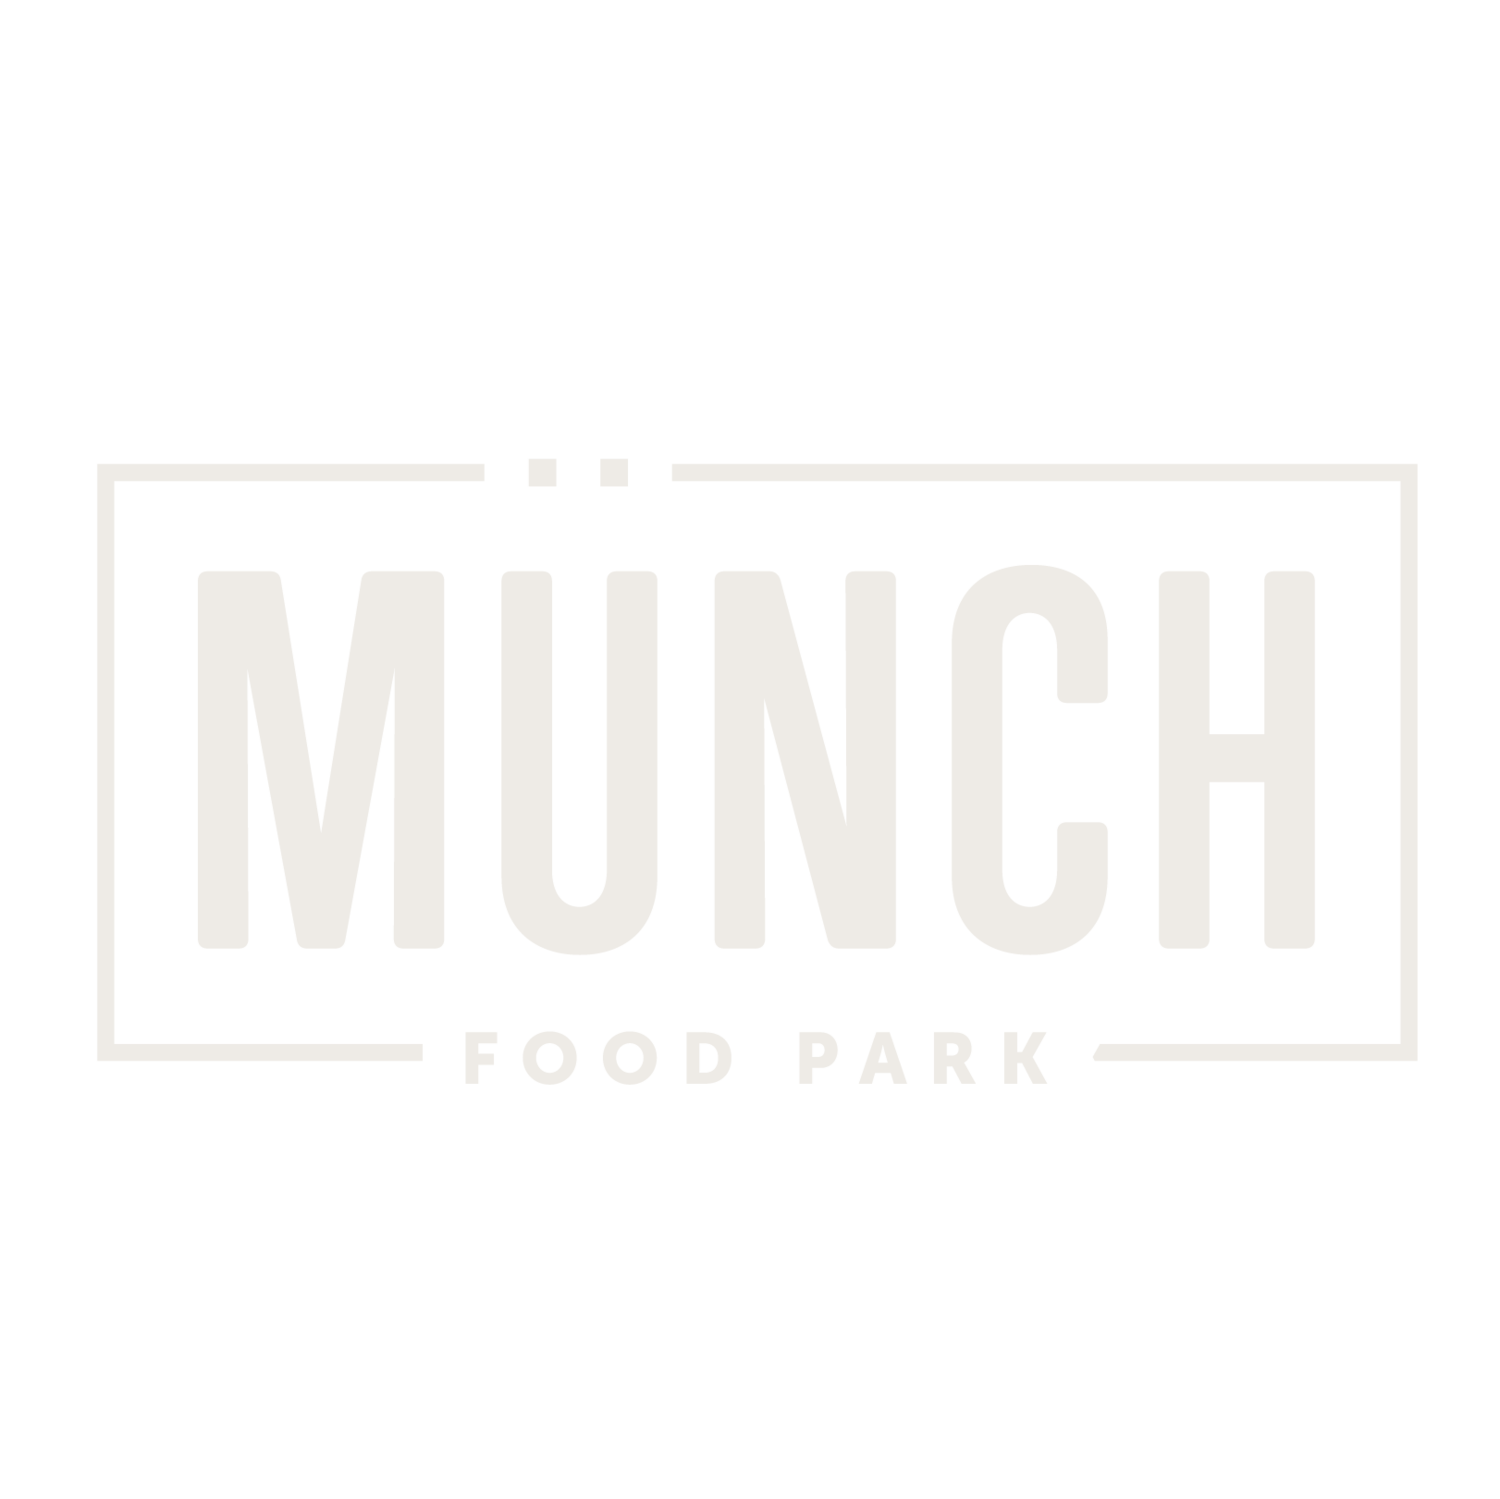 <a href='http://www.munchfoodpark.com/' target='_blank'>Munch Food Park</a>